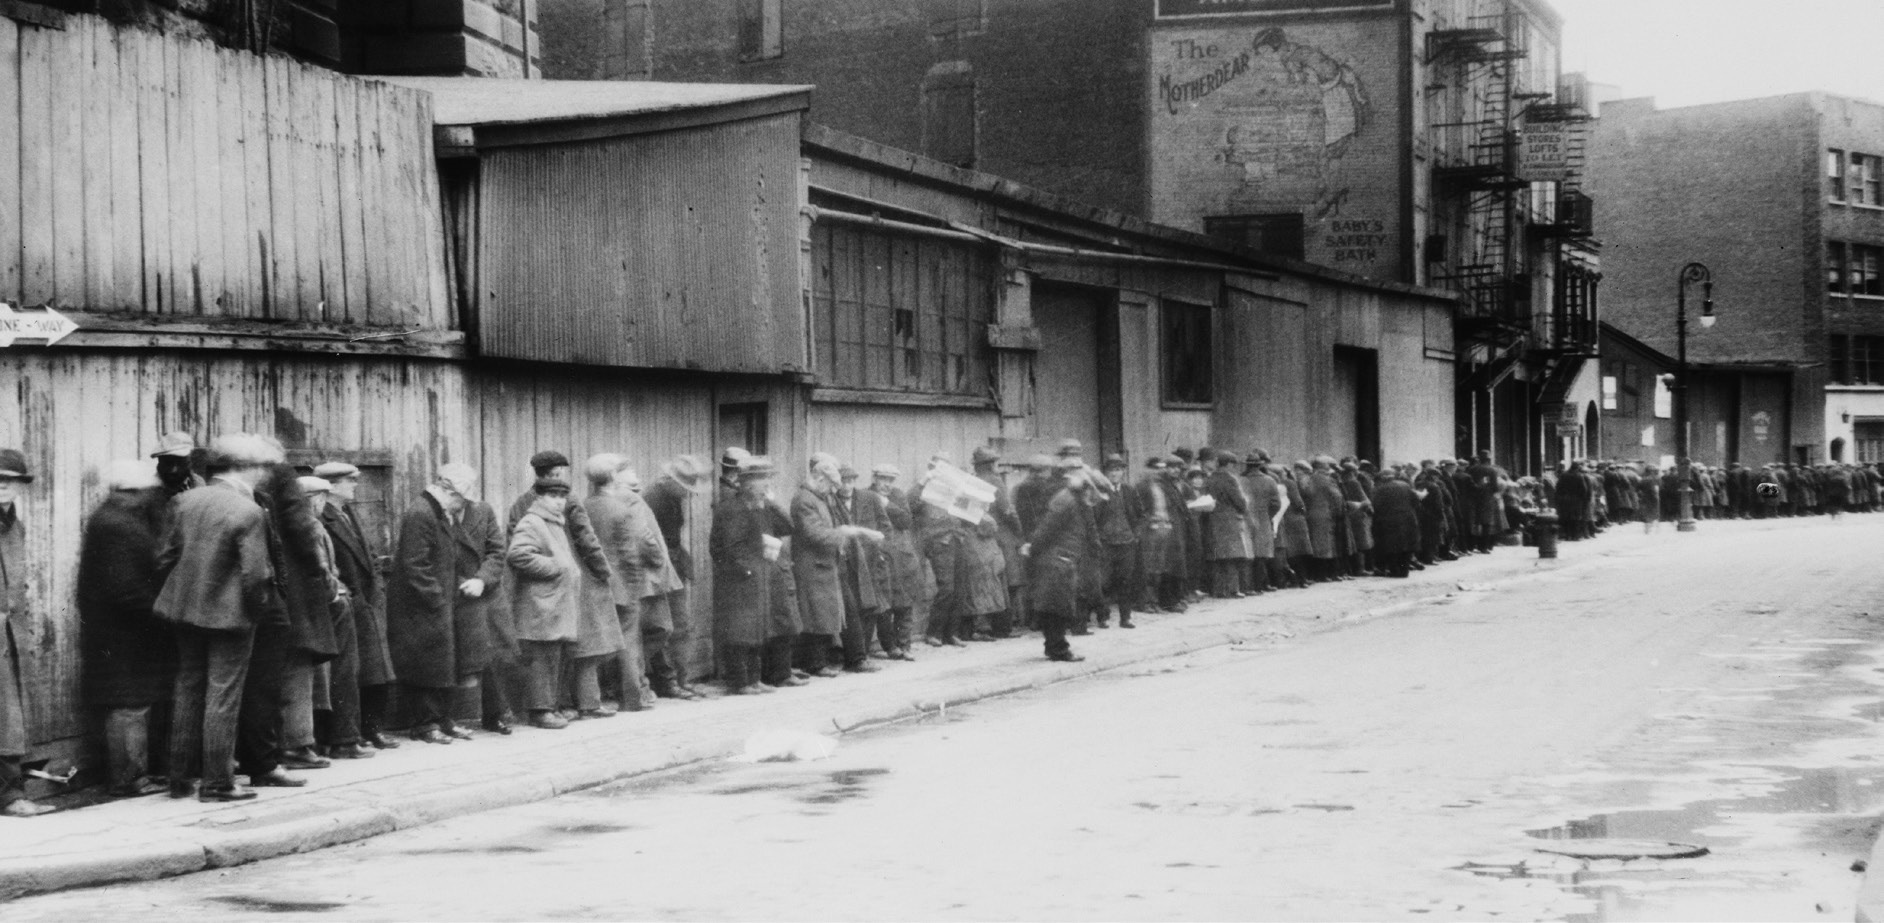 Breadline at McAuley Water Street Mission under Brooklyn Bridge, New York, circa 1930.